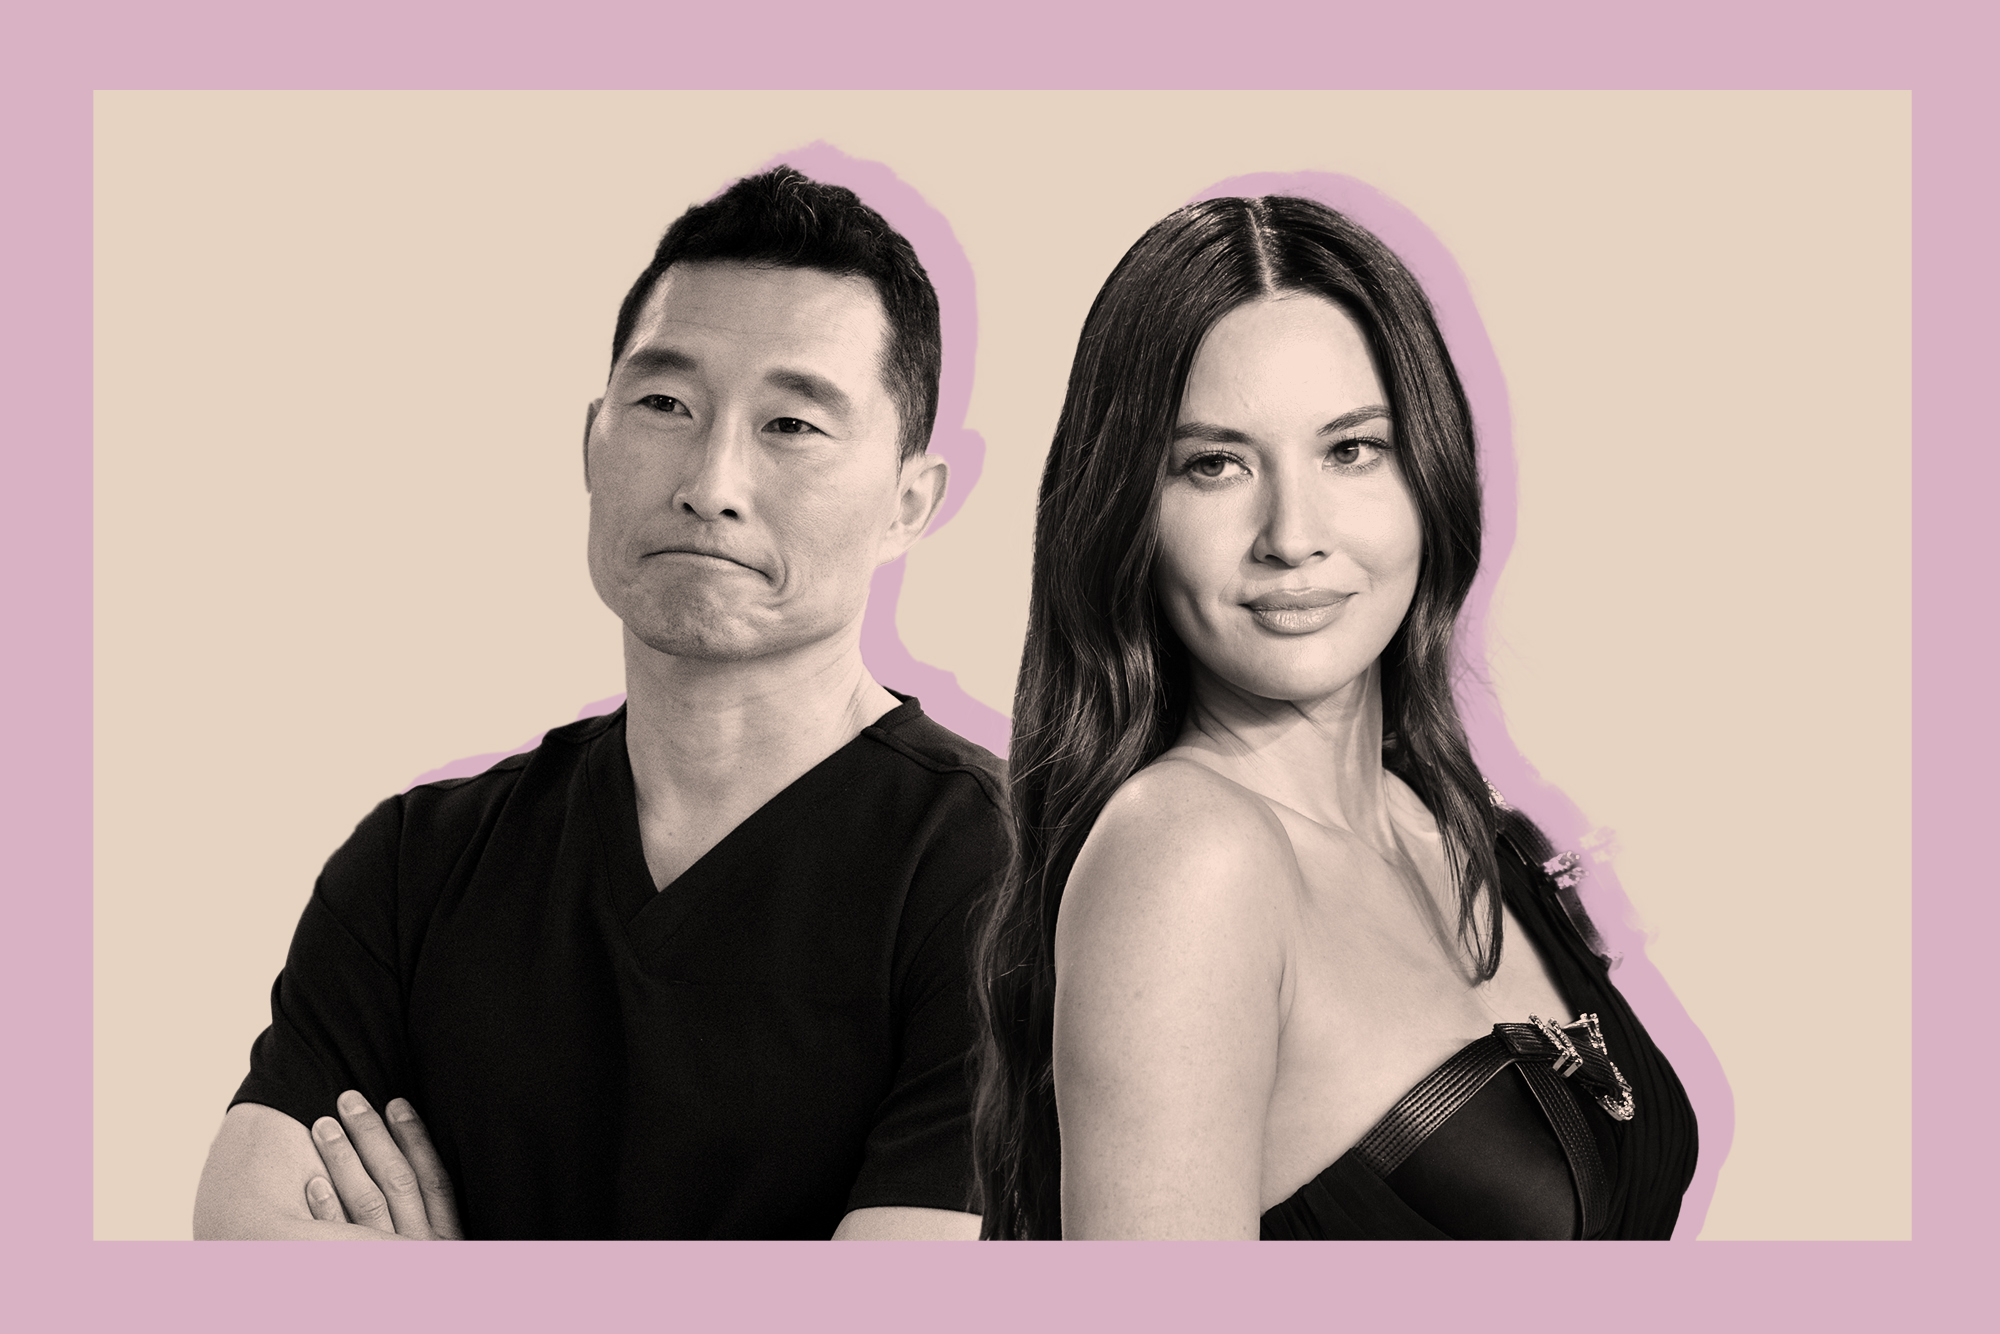 Olivia Munn, Daniel Dae Kim, and More Celebrities Speak Out On Asian-American Hate Crimes